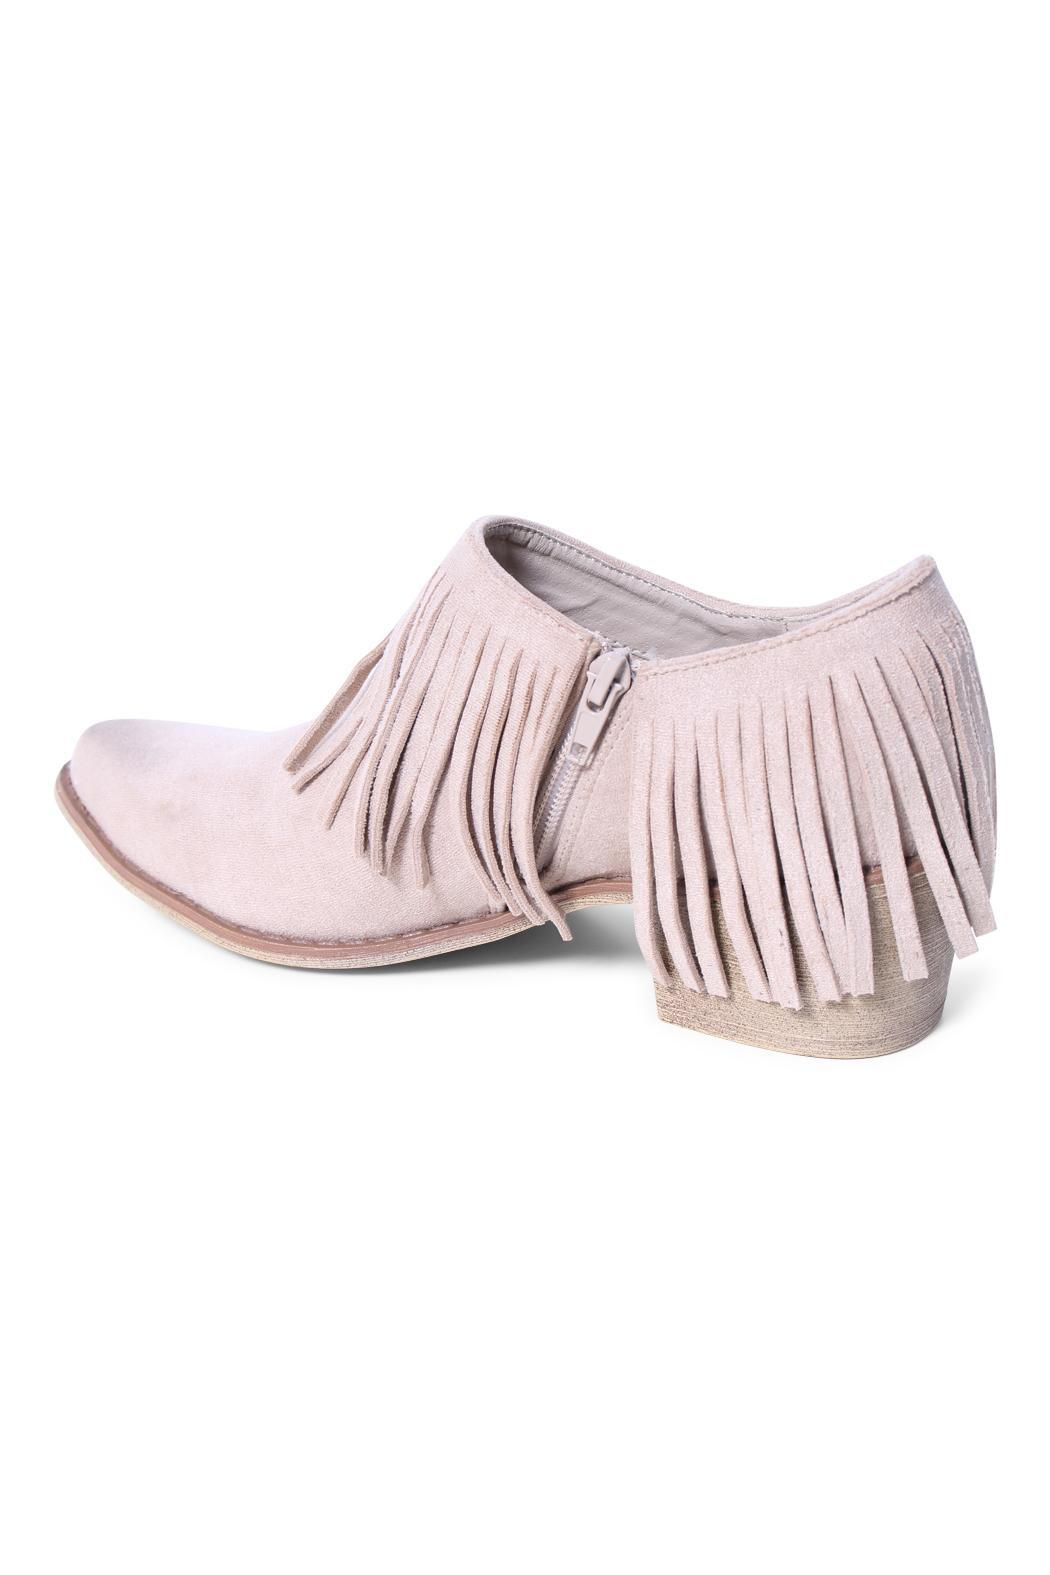 Coconuts by Matisse Fringe Shoe Bootie - Side Cropped Image